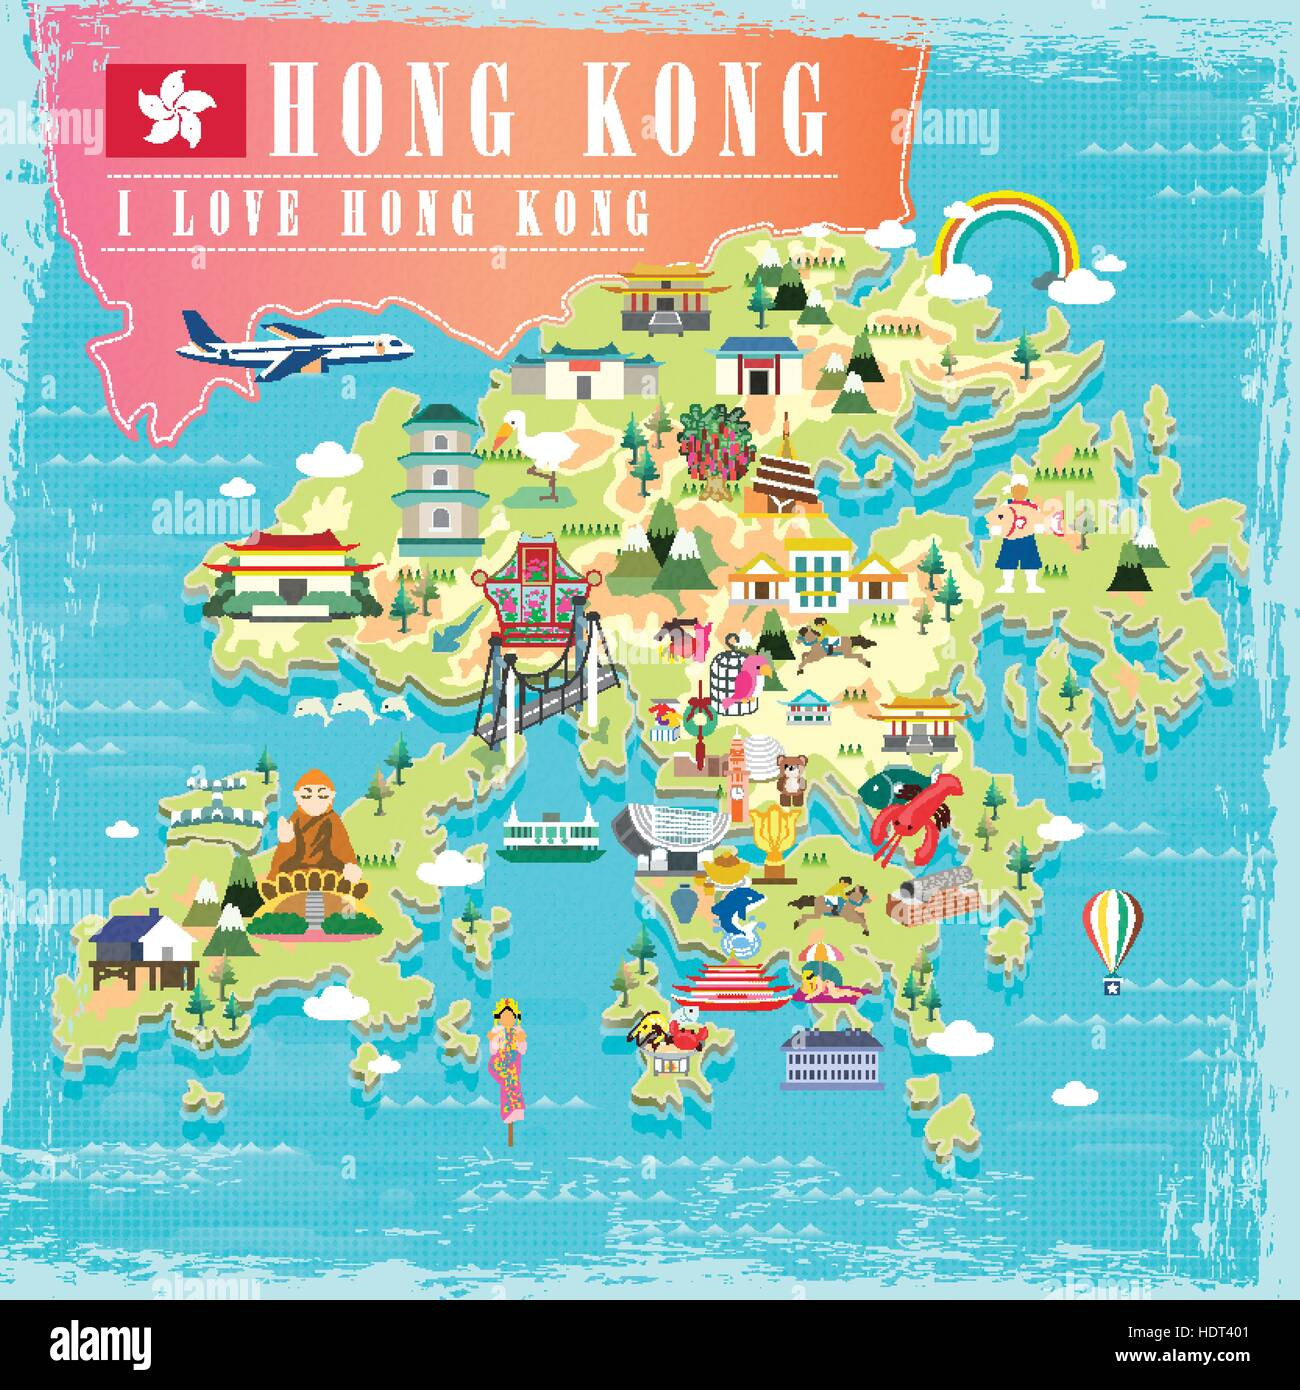 I Hong Kong concept travel map with attractions icons in flat ... Kowloon Map Of Attractions on map of macau attractions, map of hong kong attractions, map of istanbul attractions, map of times square attractions,